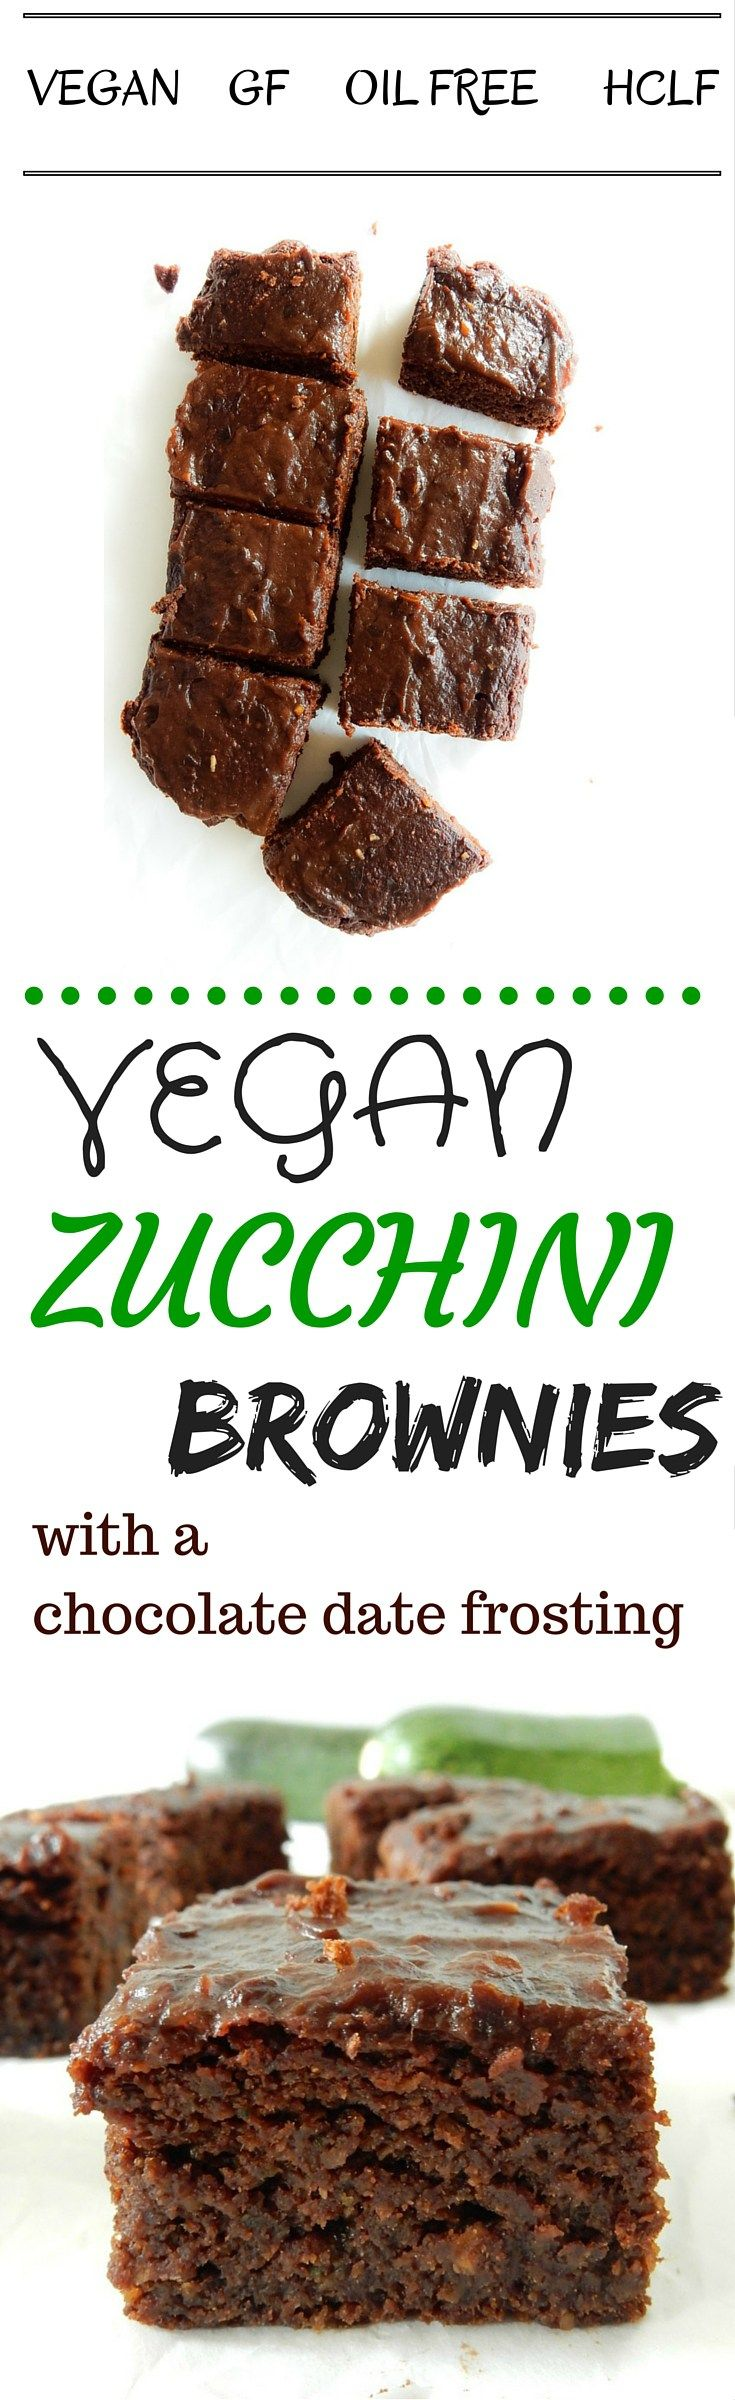 Vegan Zucchini Brownies with a Chocolate Date Frosting. Oil Free, Nut Free and Gluten Free!